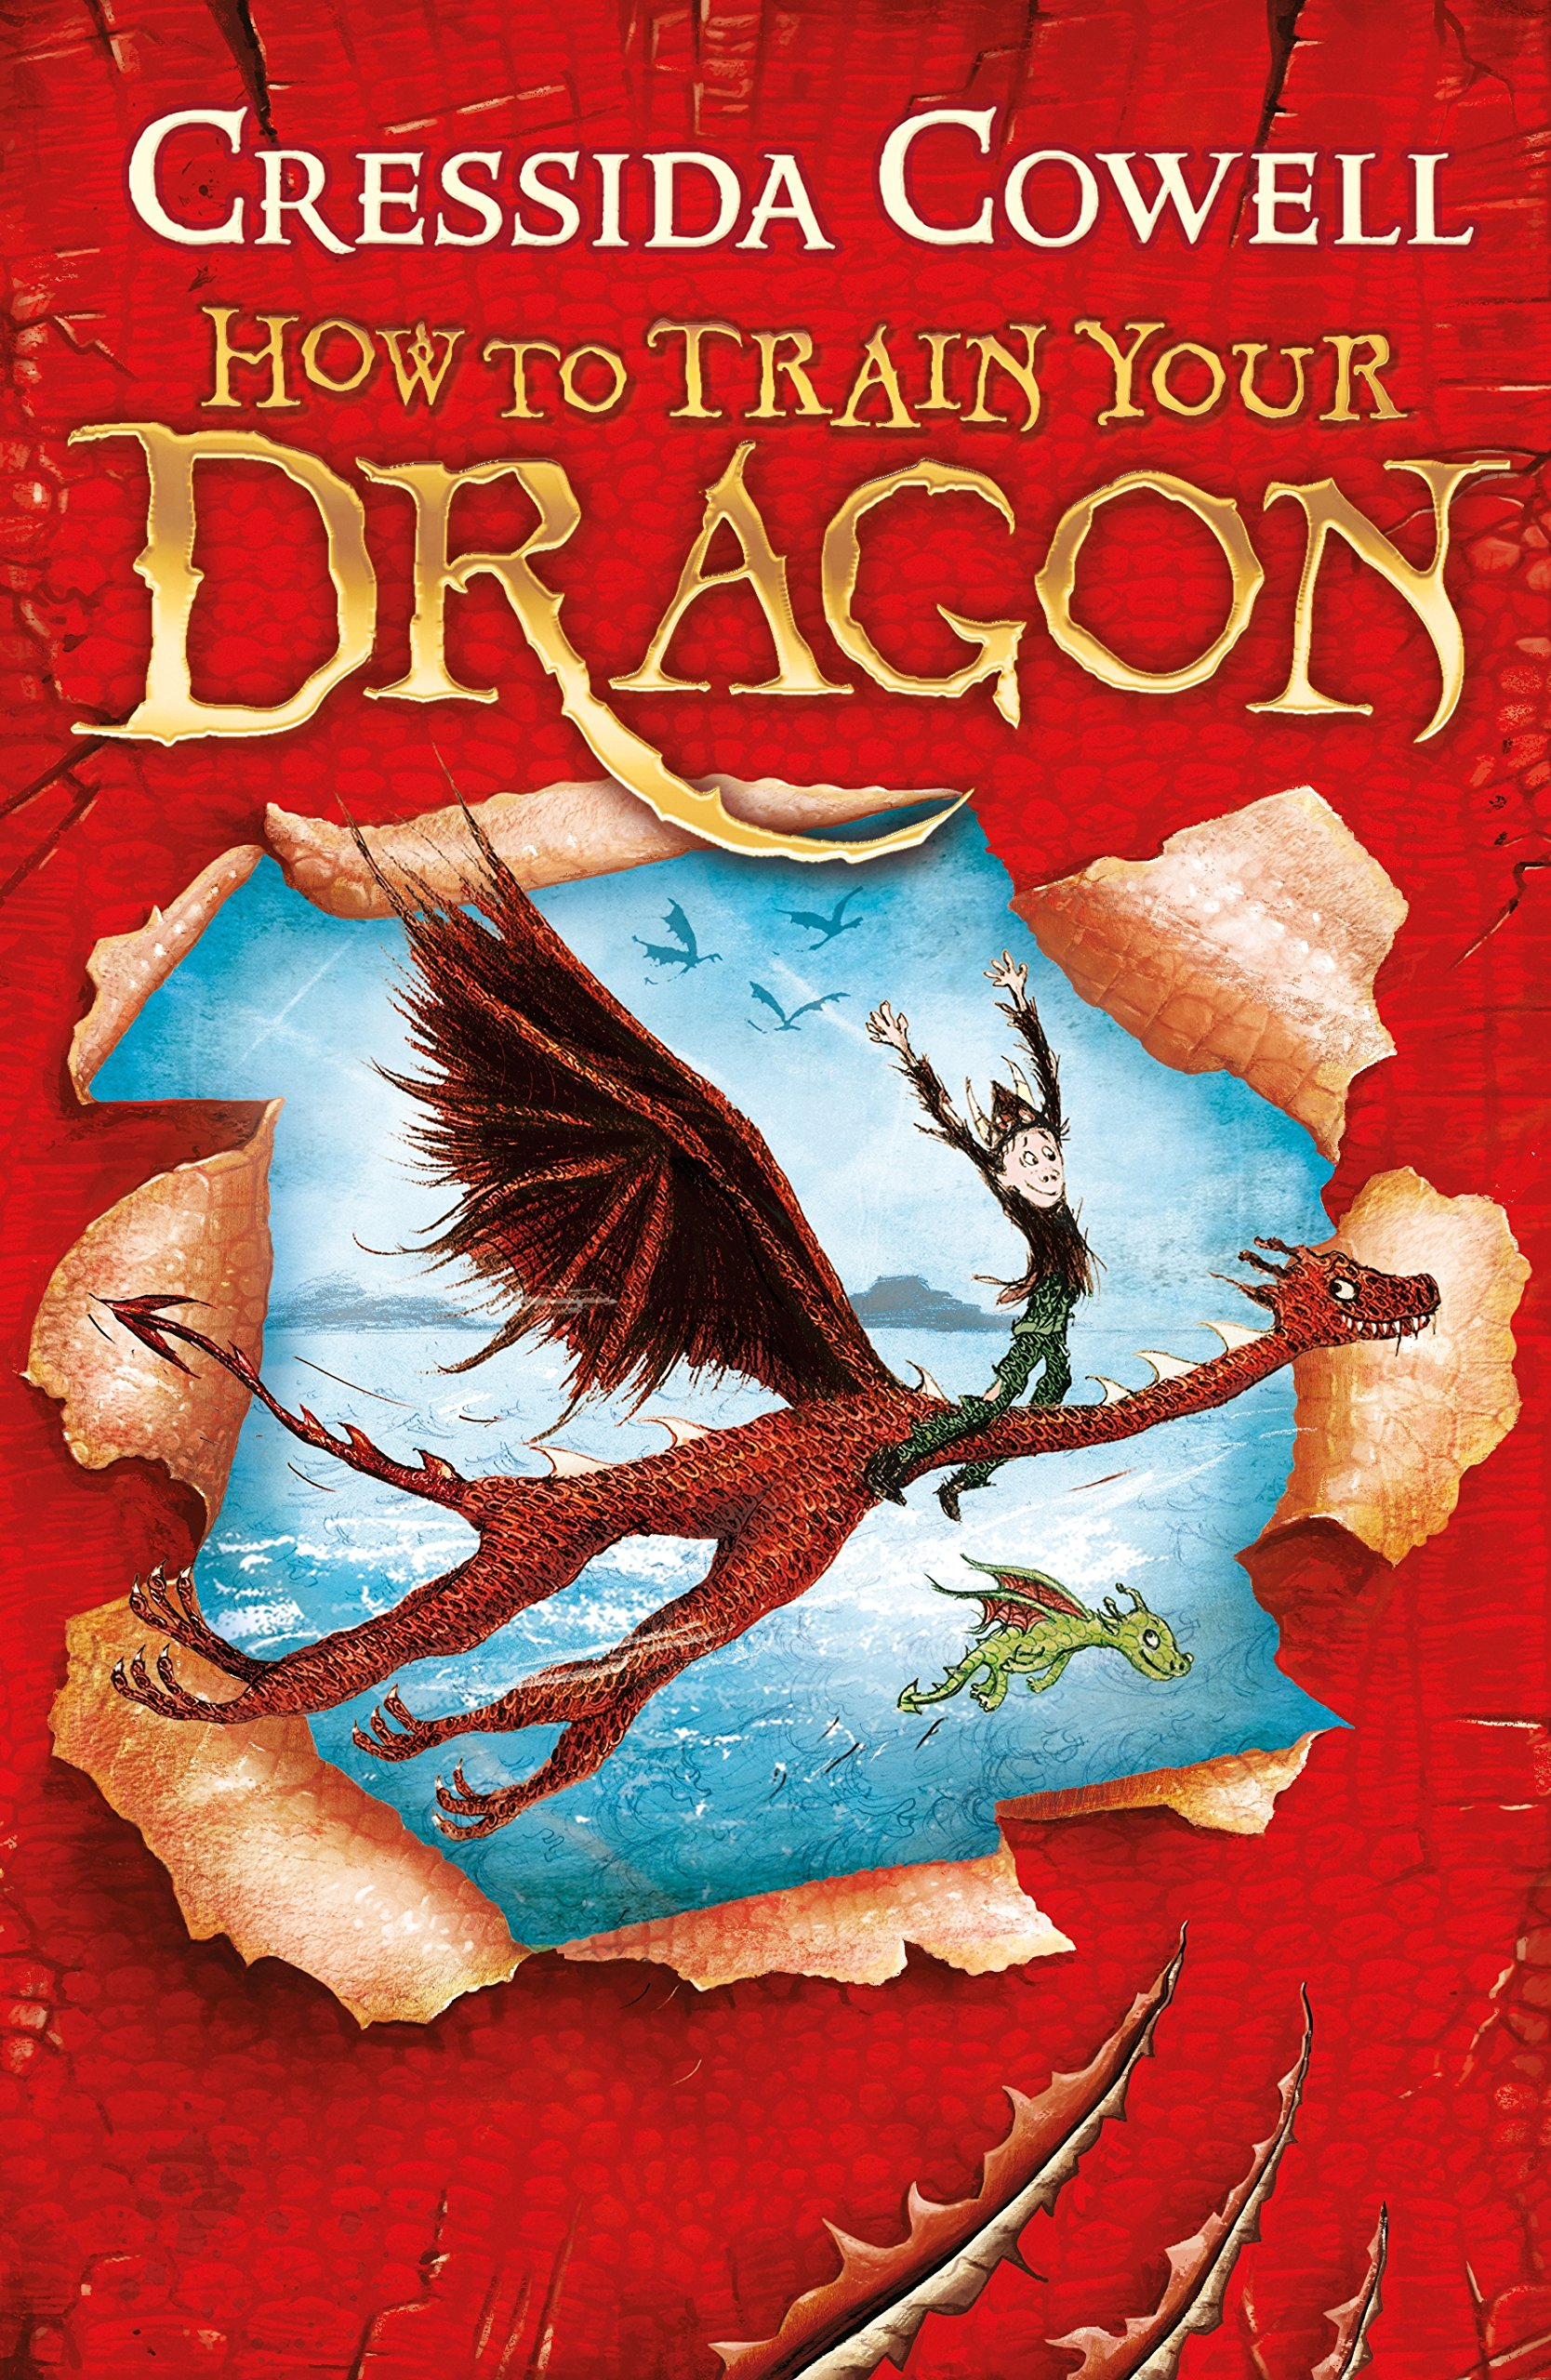 Image result for how to train your dragon book